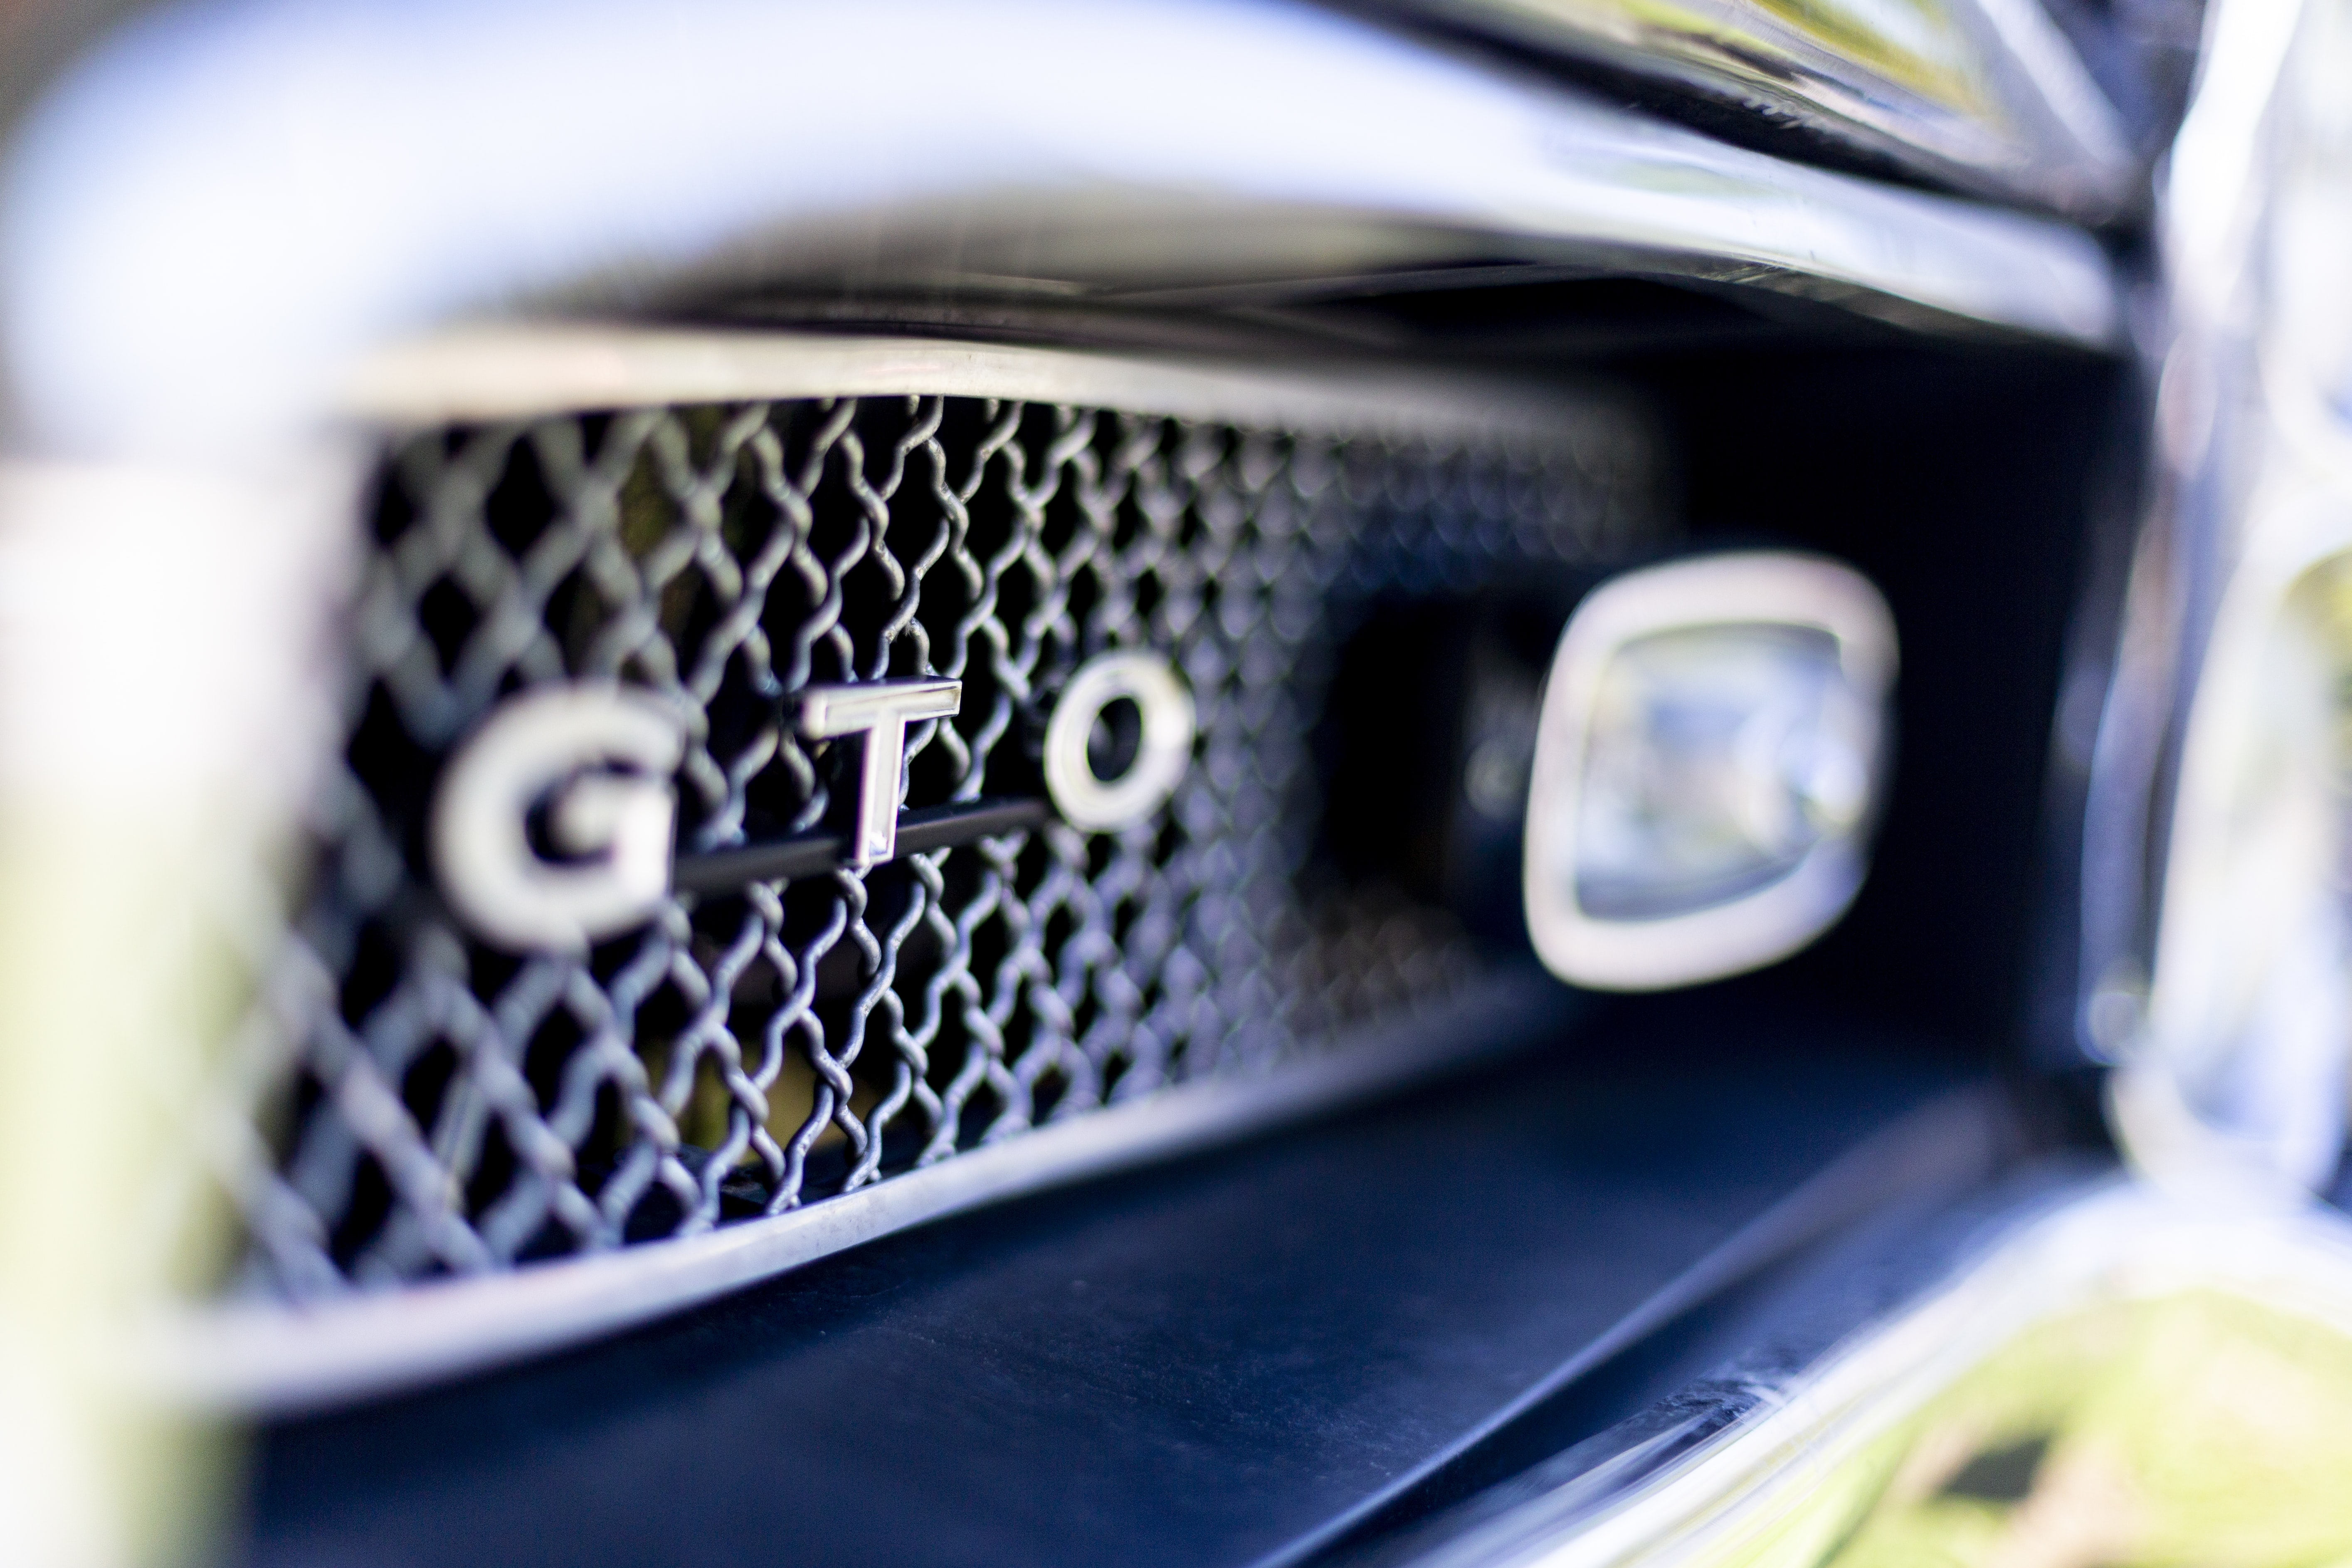 close-up photography of gray GTO vehicle